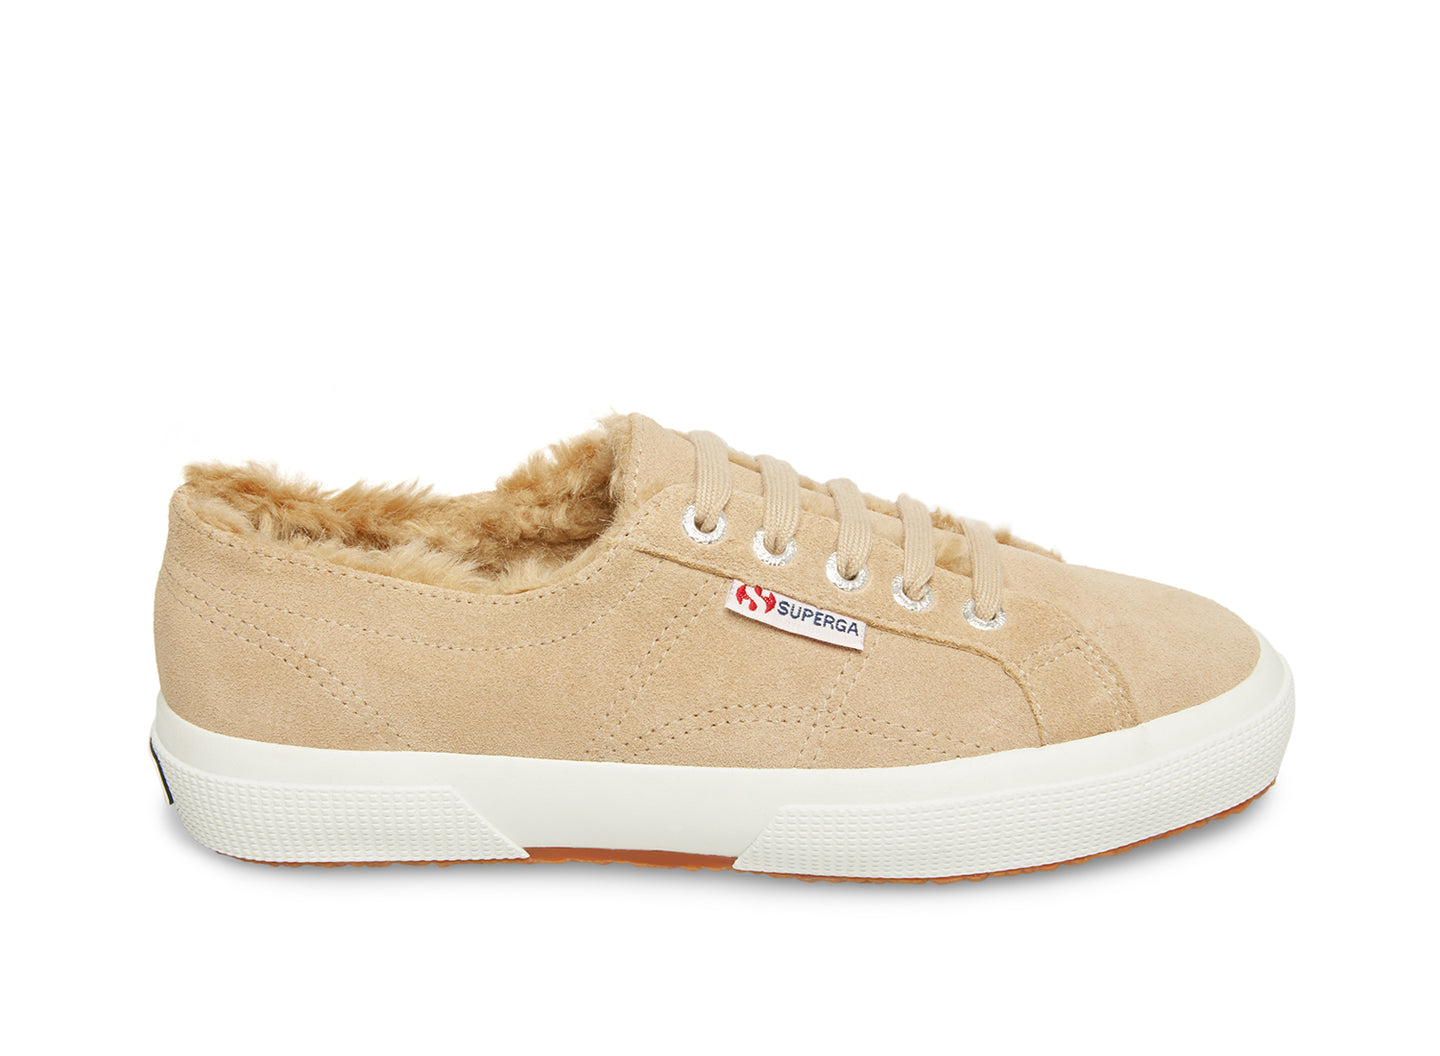 2750 SUEHAIRYFURW BEIGE SUEDE - Women's and Men's